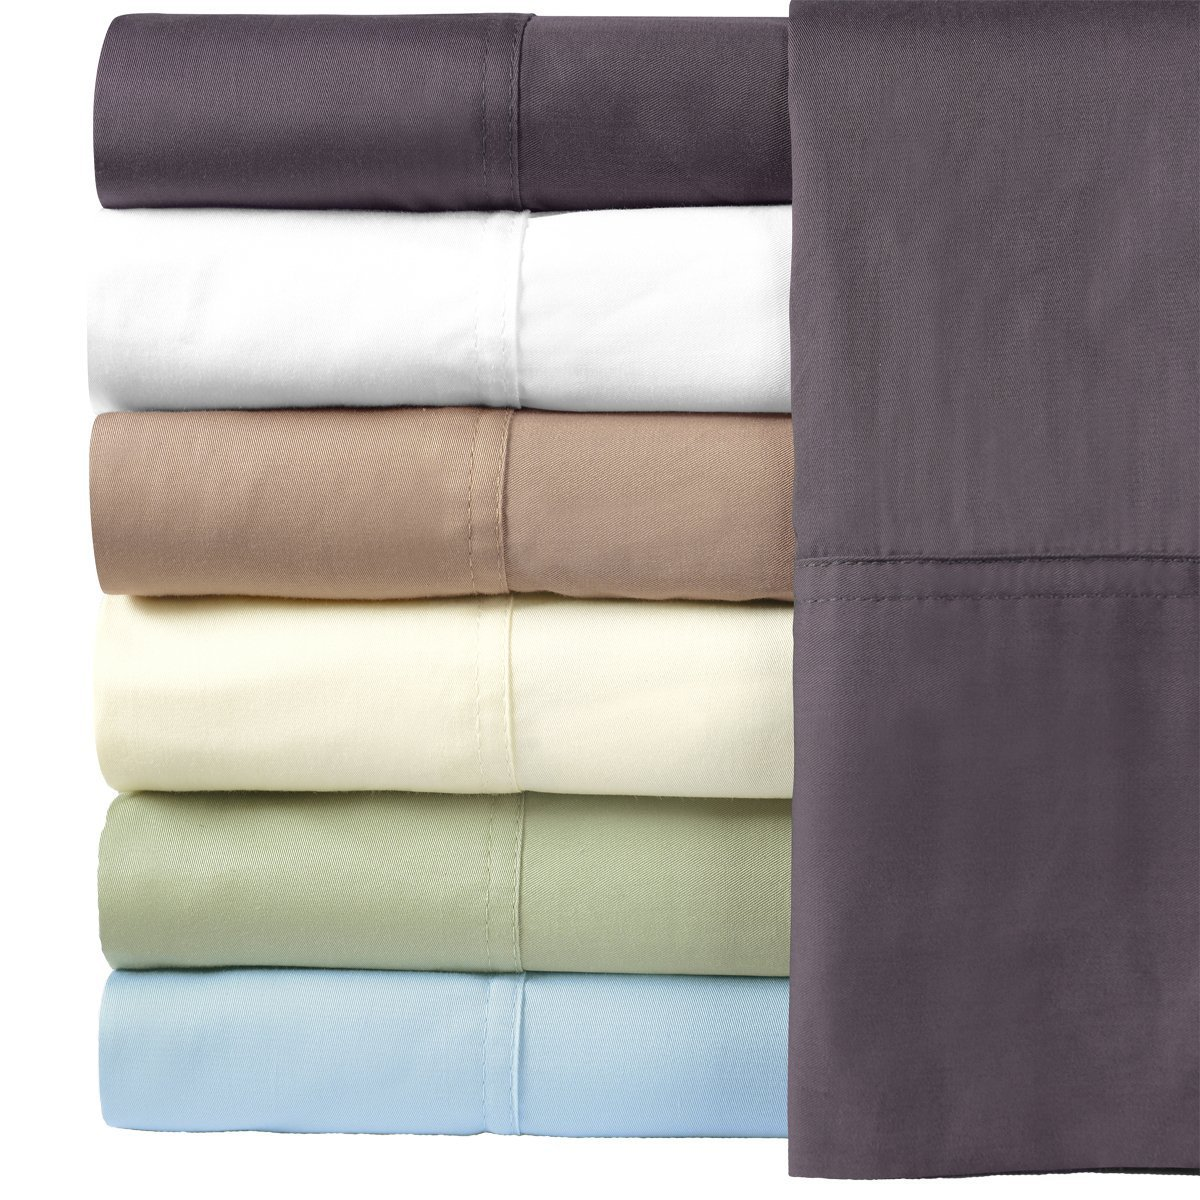 Royal Hotel Silky Soft Bamboo King Cotton Sheet Set - Ivory by Royal Hotel (Image #1)